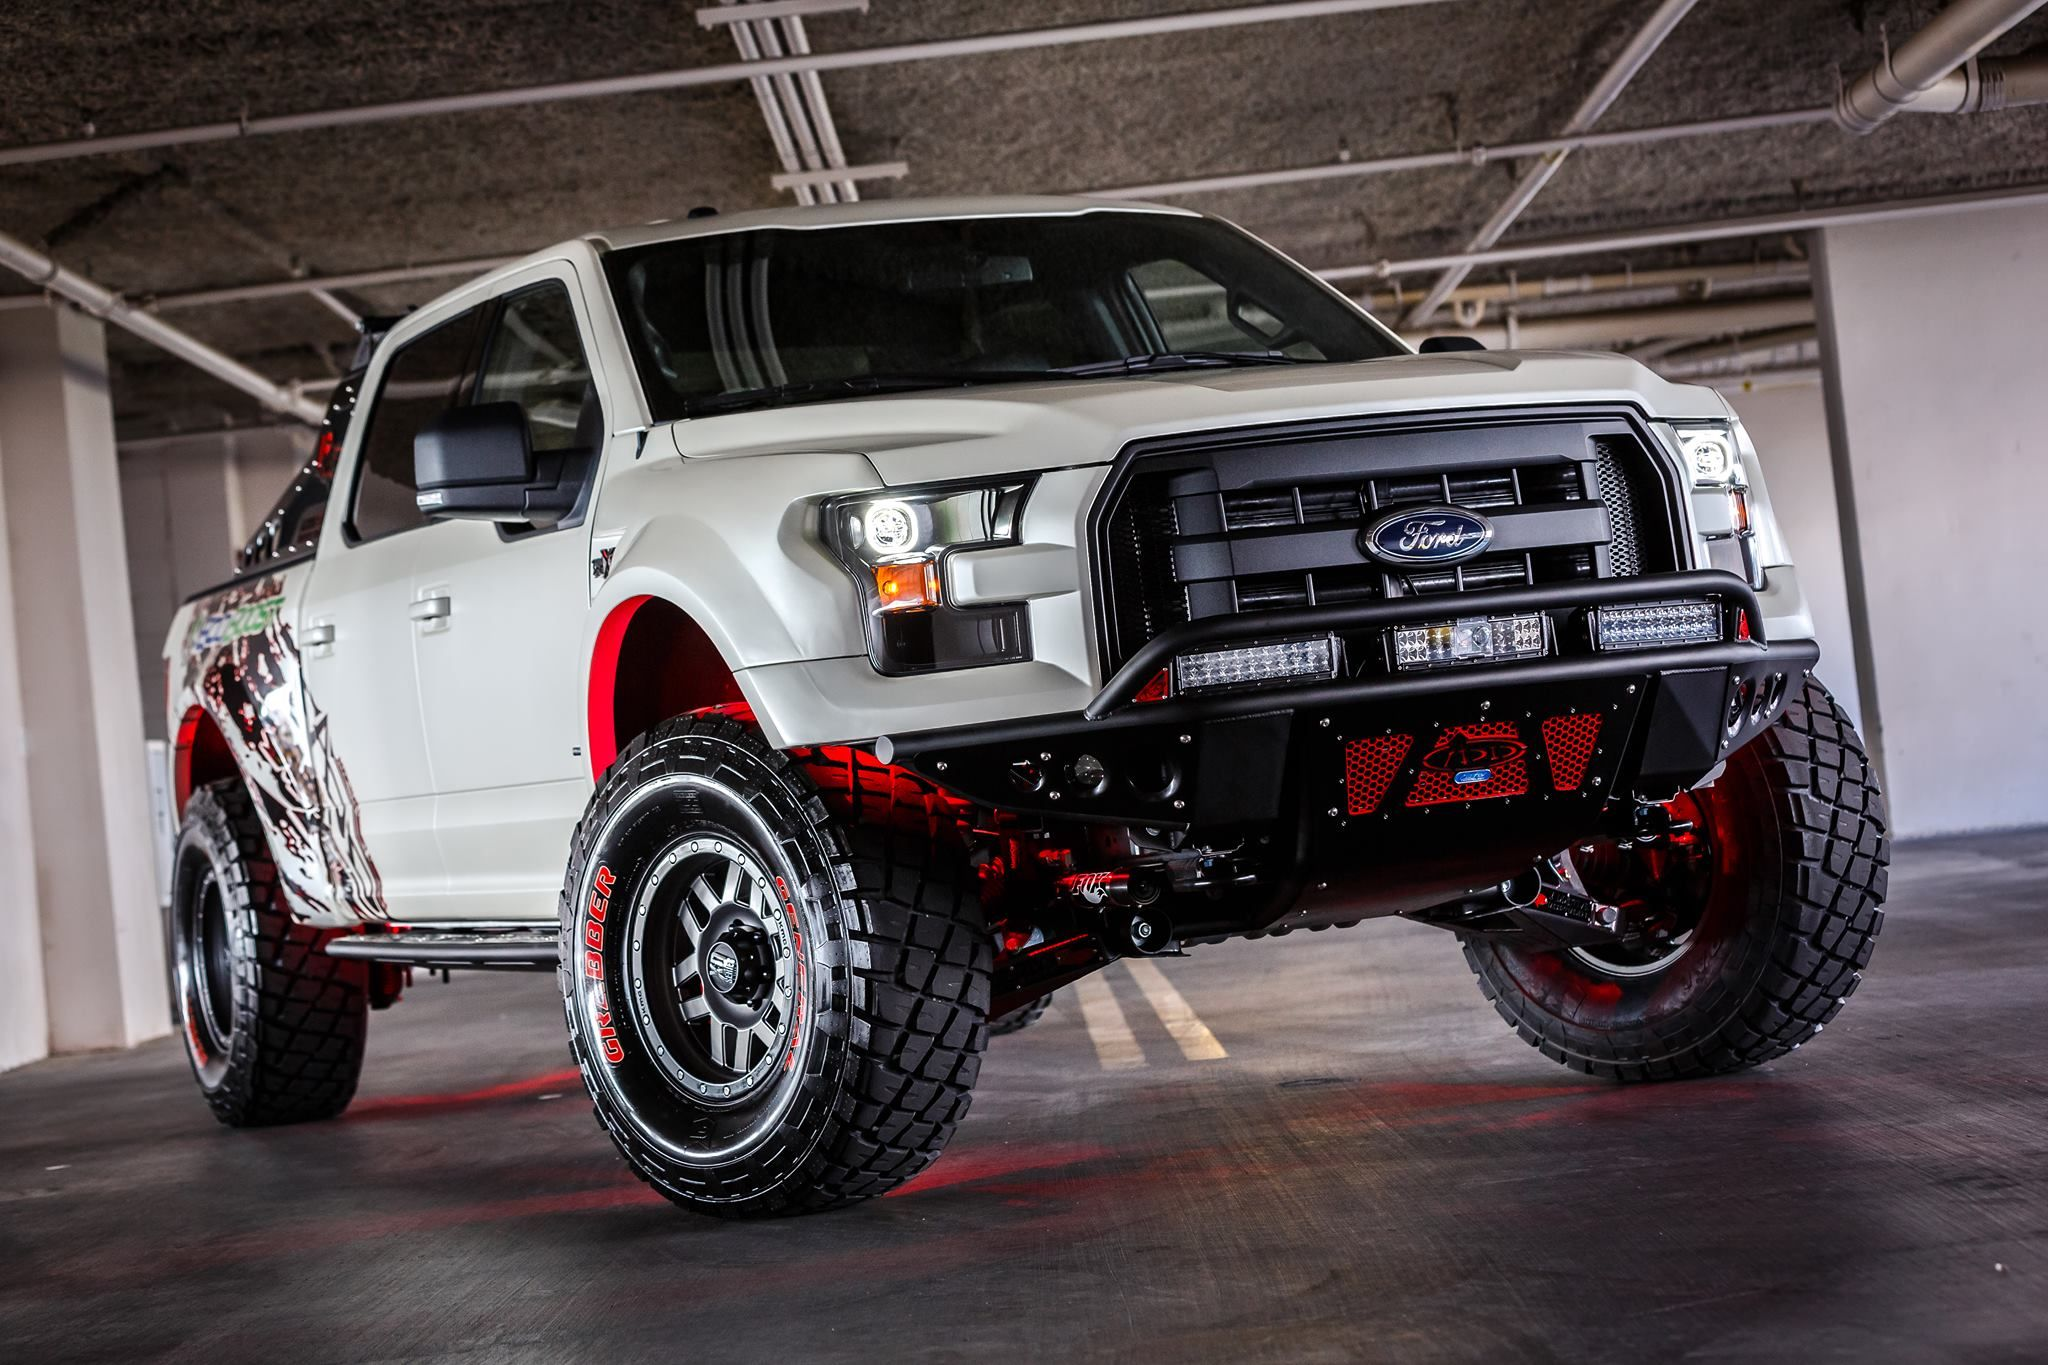 From renderings to real life 2015 Ford F 150 with our Baja XT kit